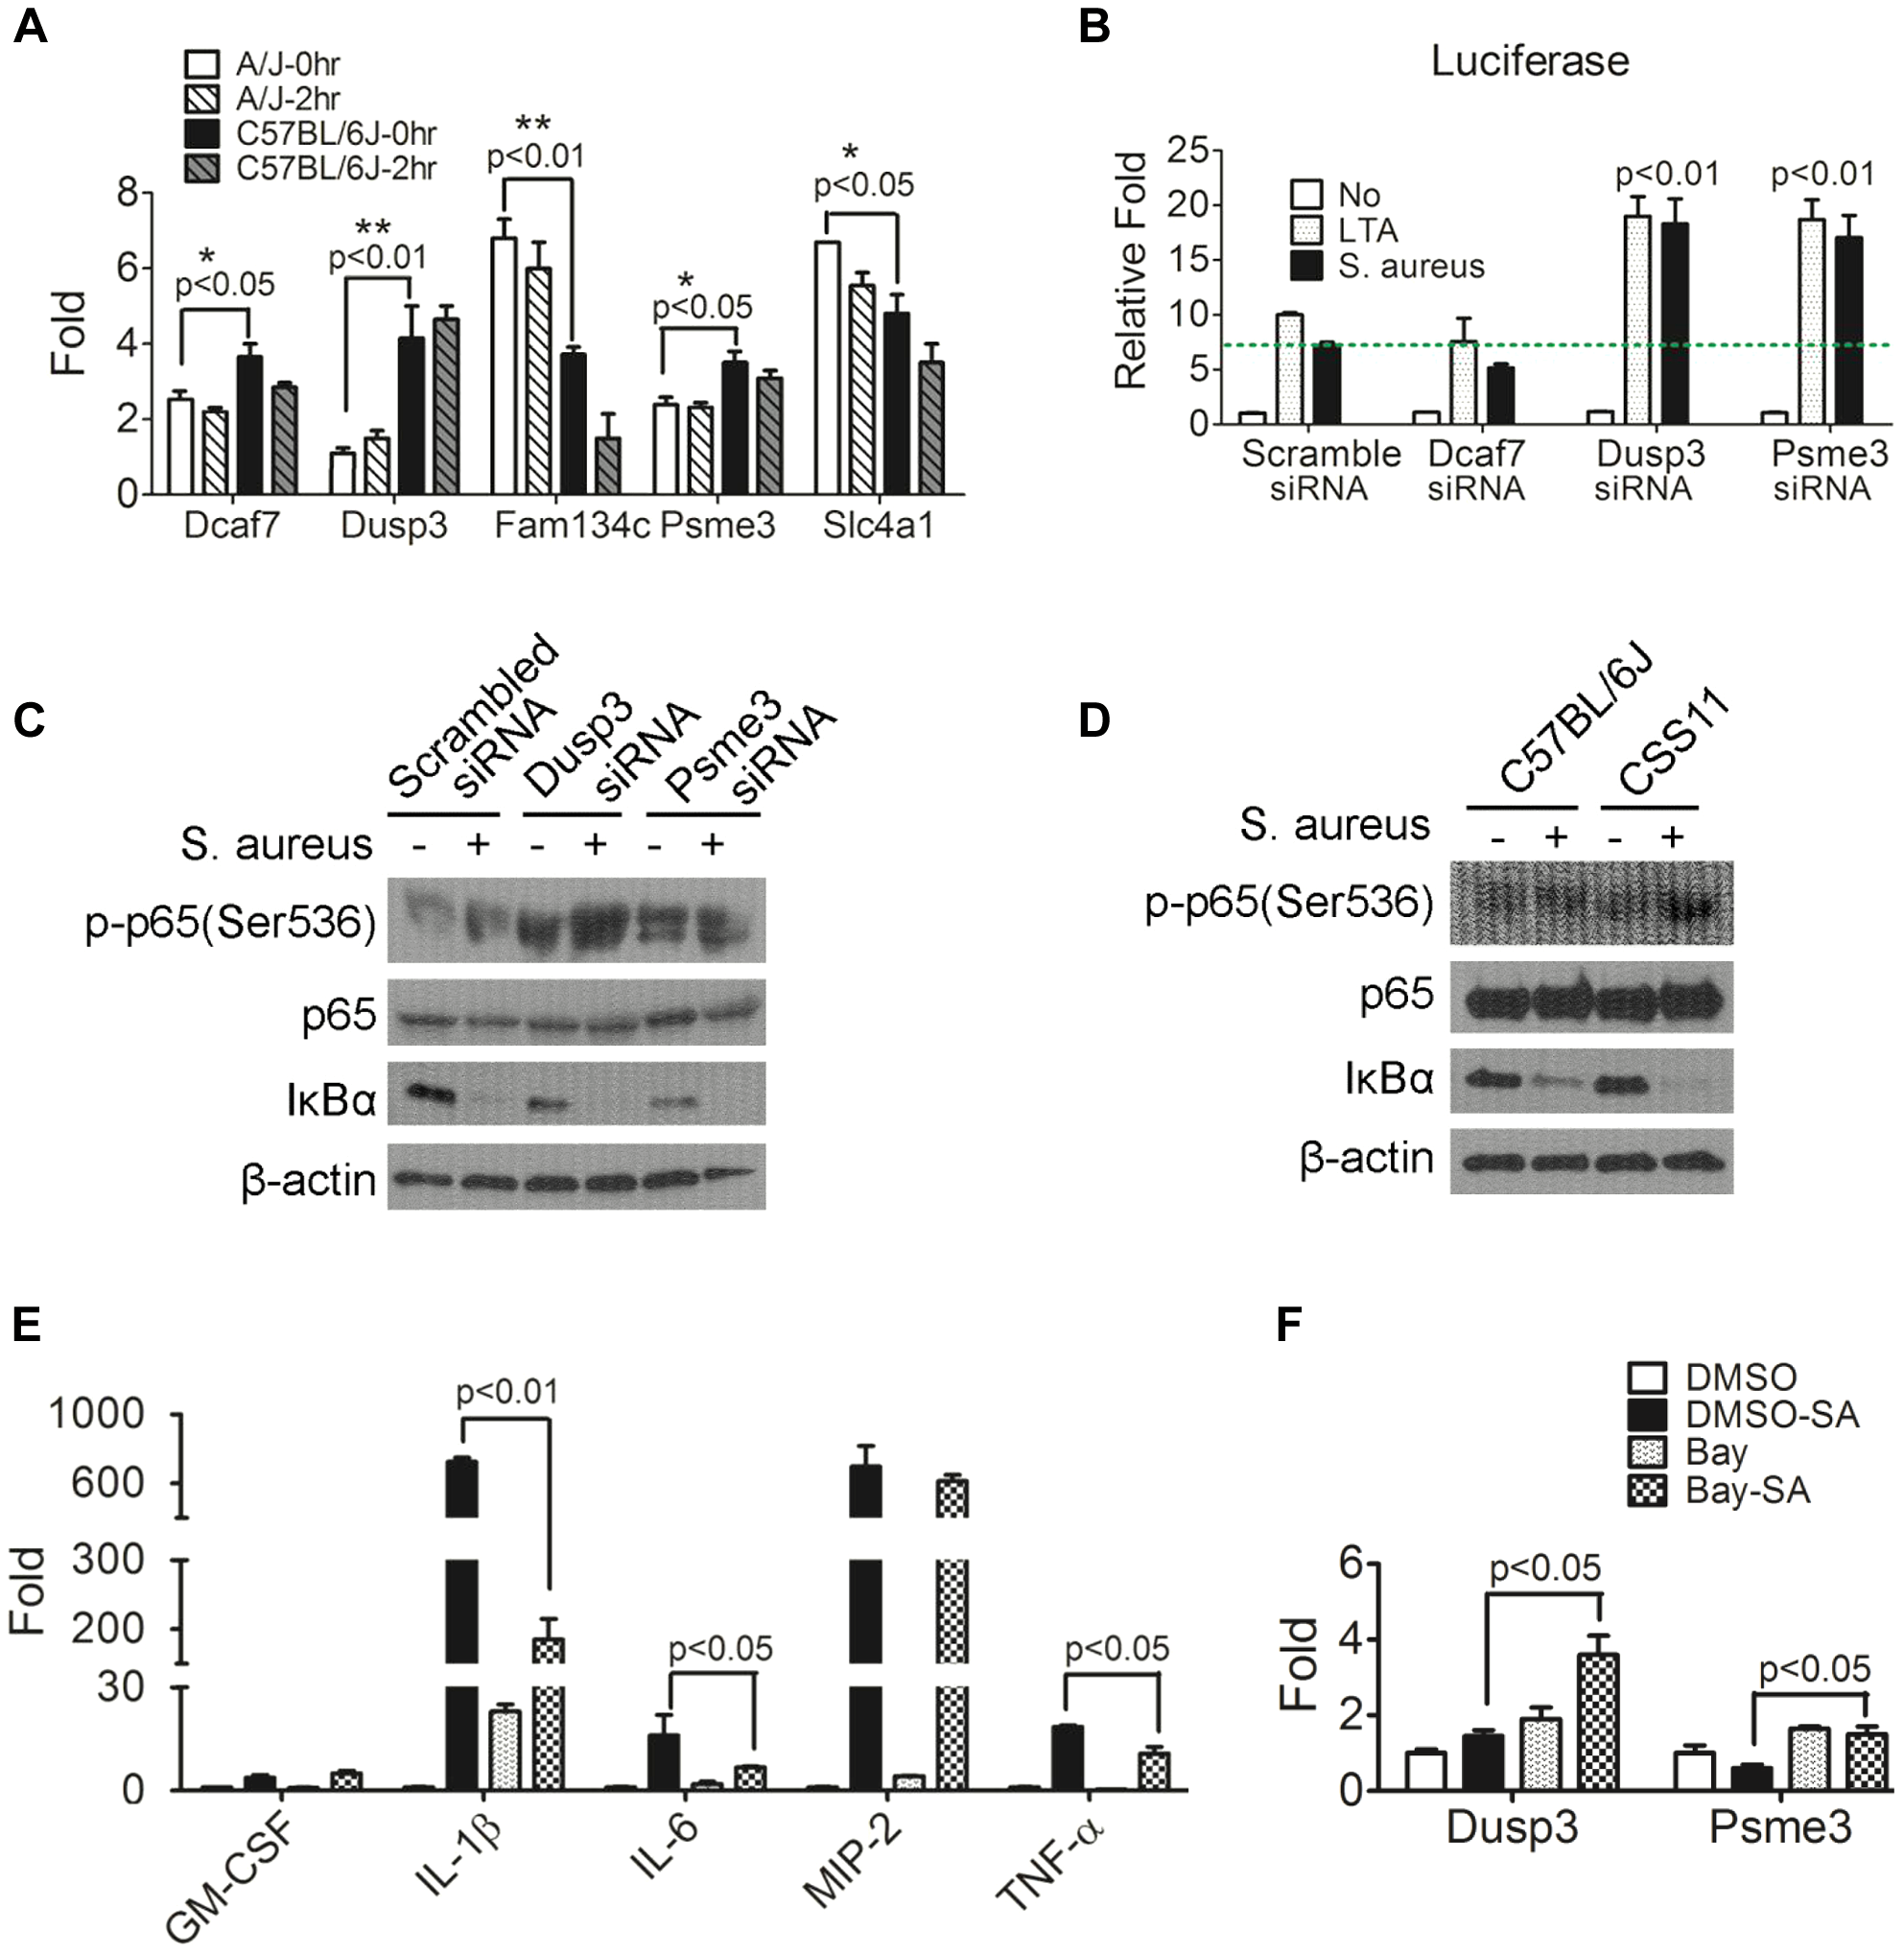 Down-regulation of <i>Dusp3</i> and <i>Psme3</i> in A/J are responsible for increased NF-κB signaling activity.